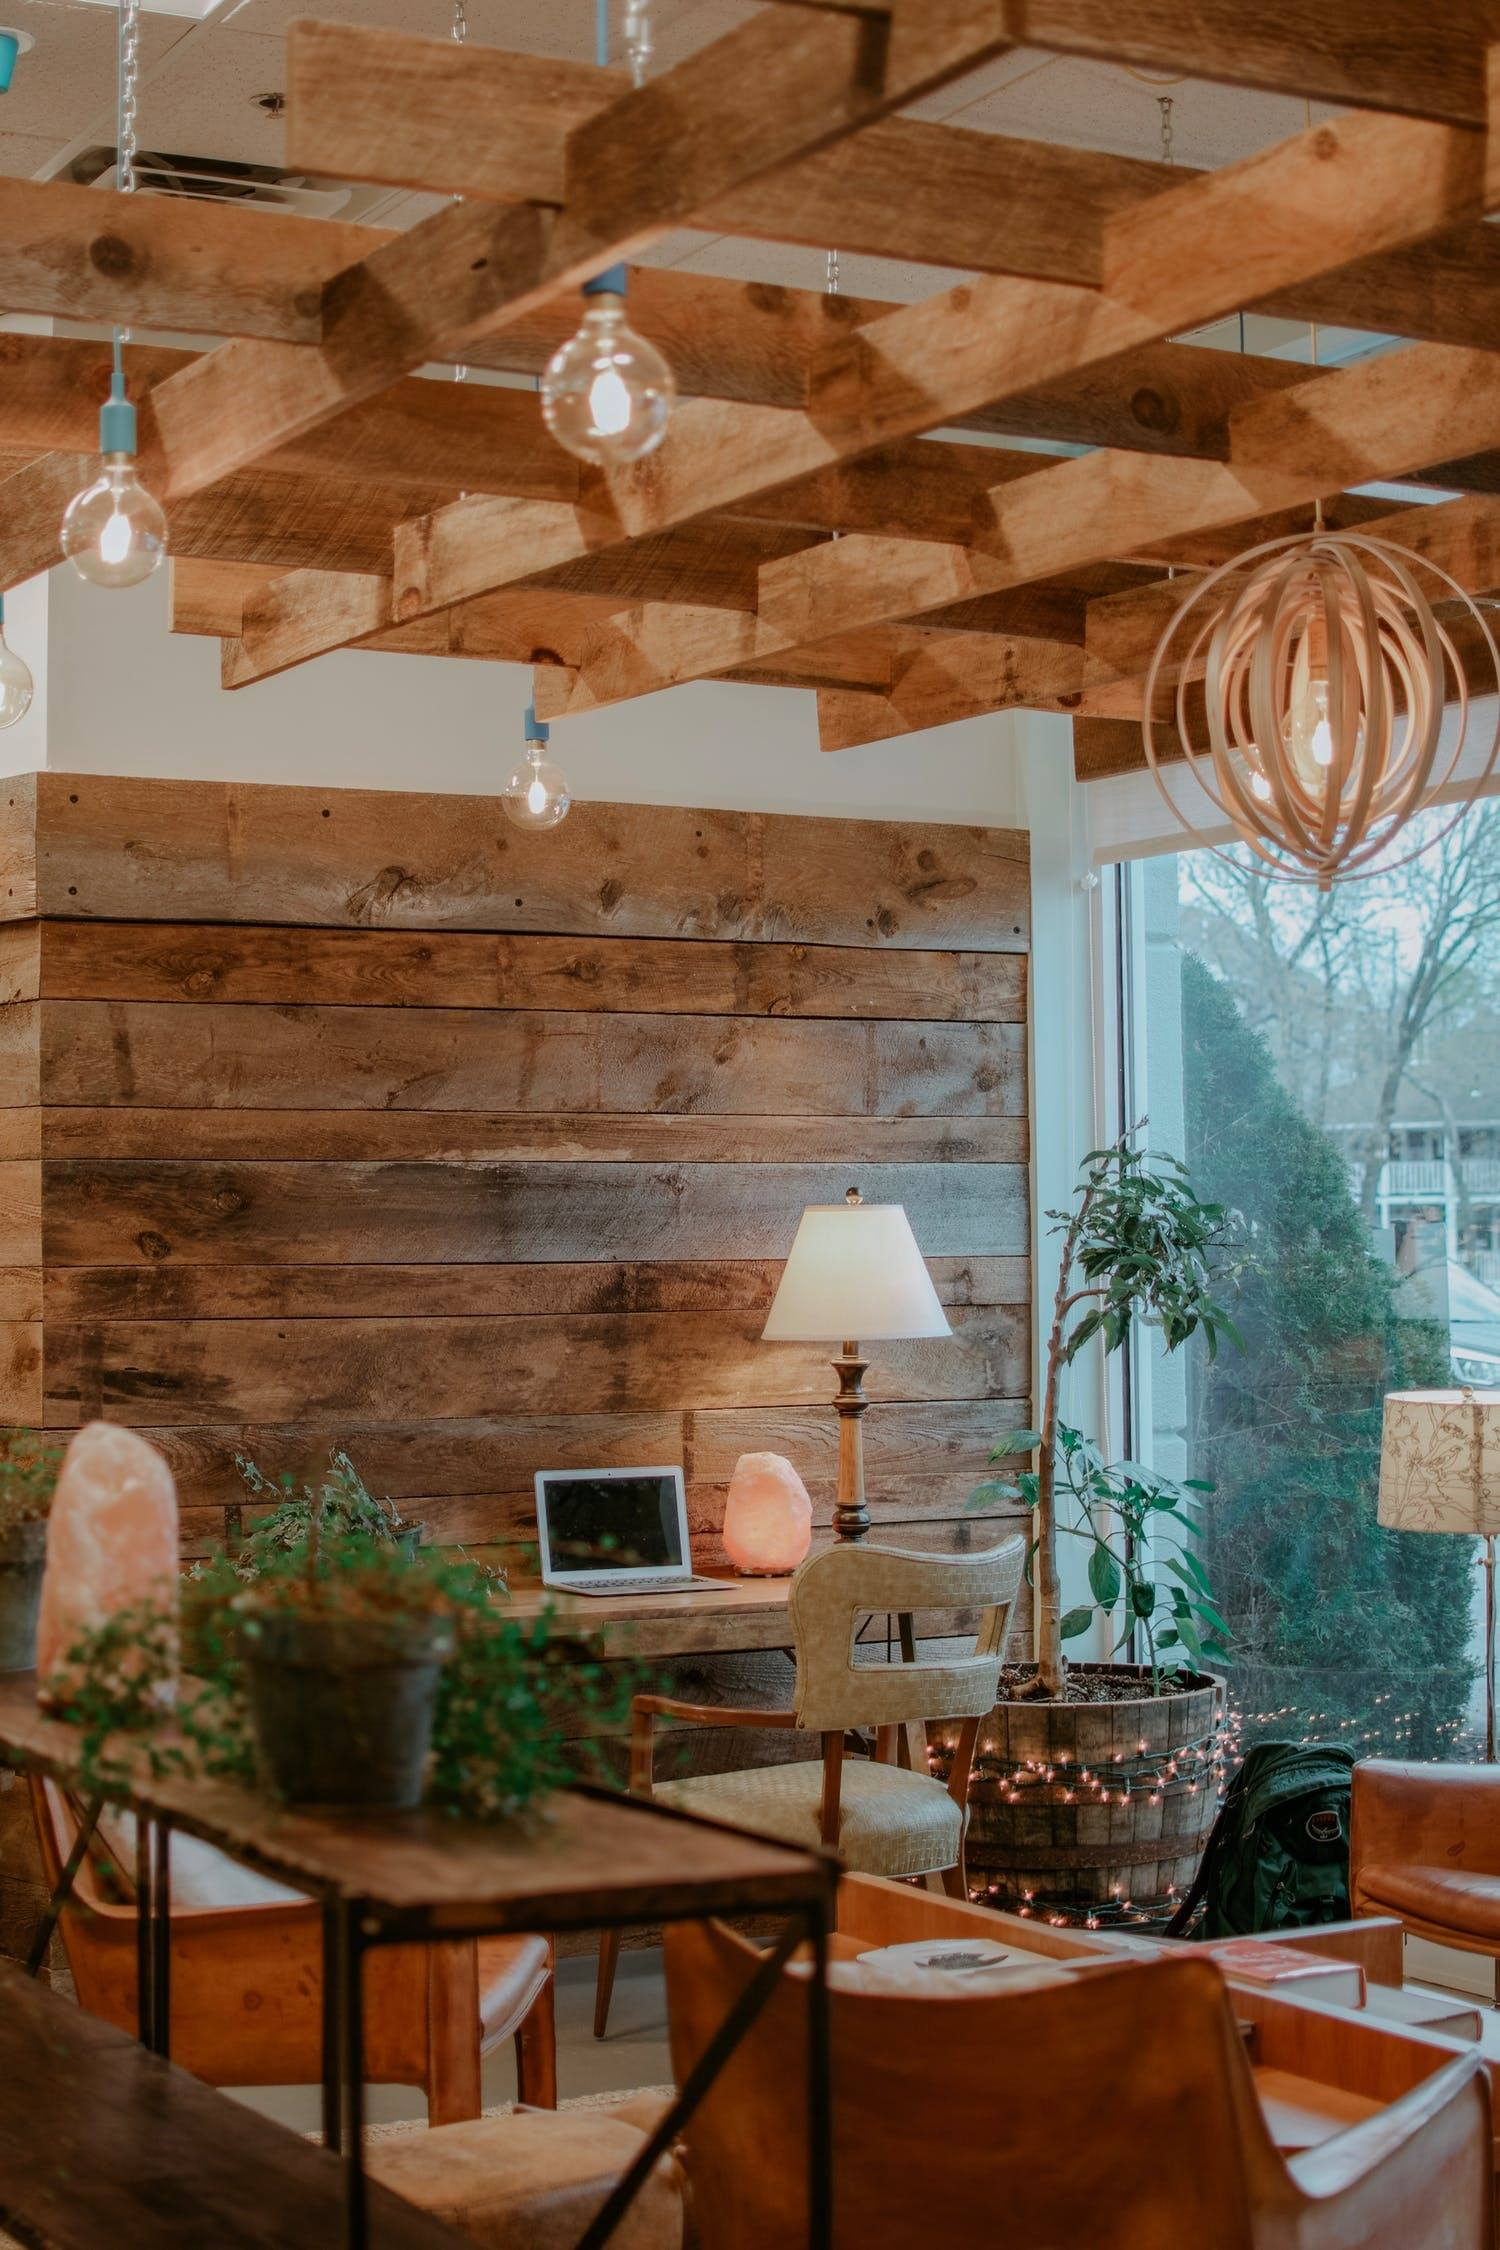 Tricks For Landlords Who Want To Spruce Up Their Ceilings